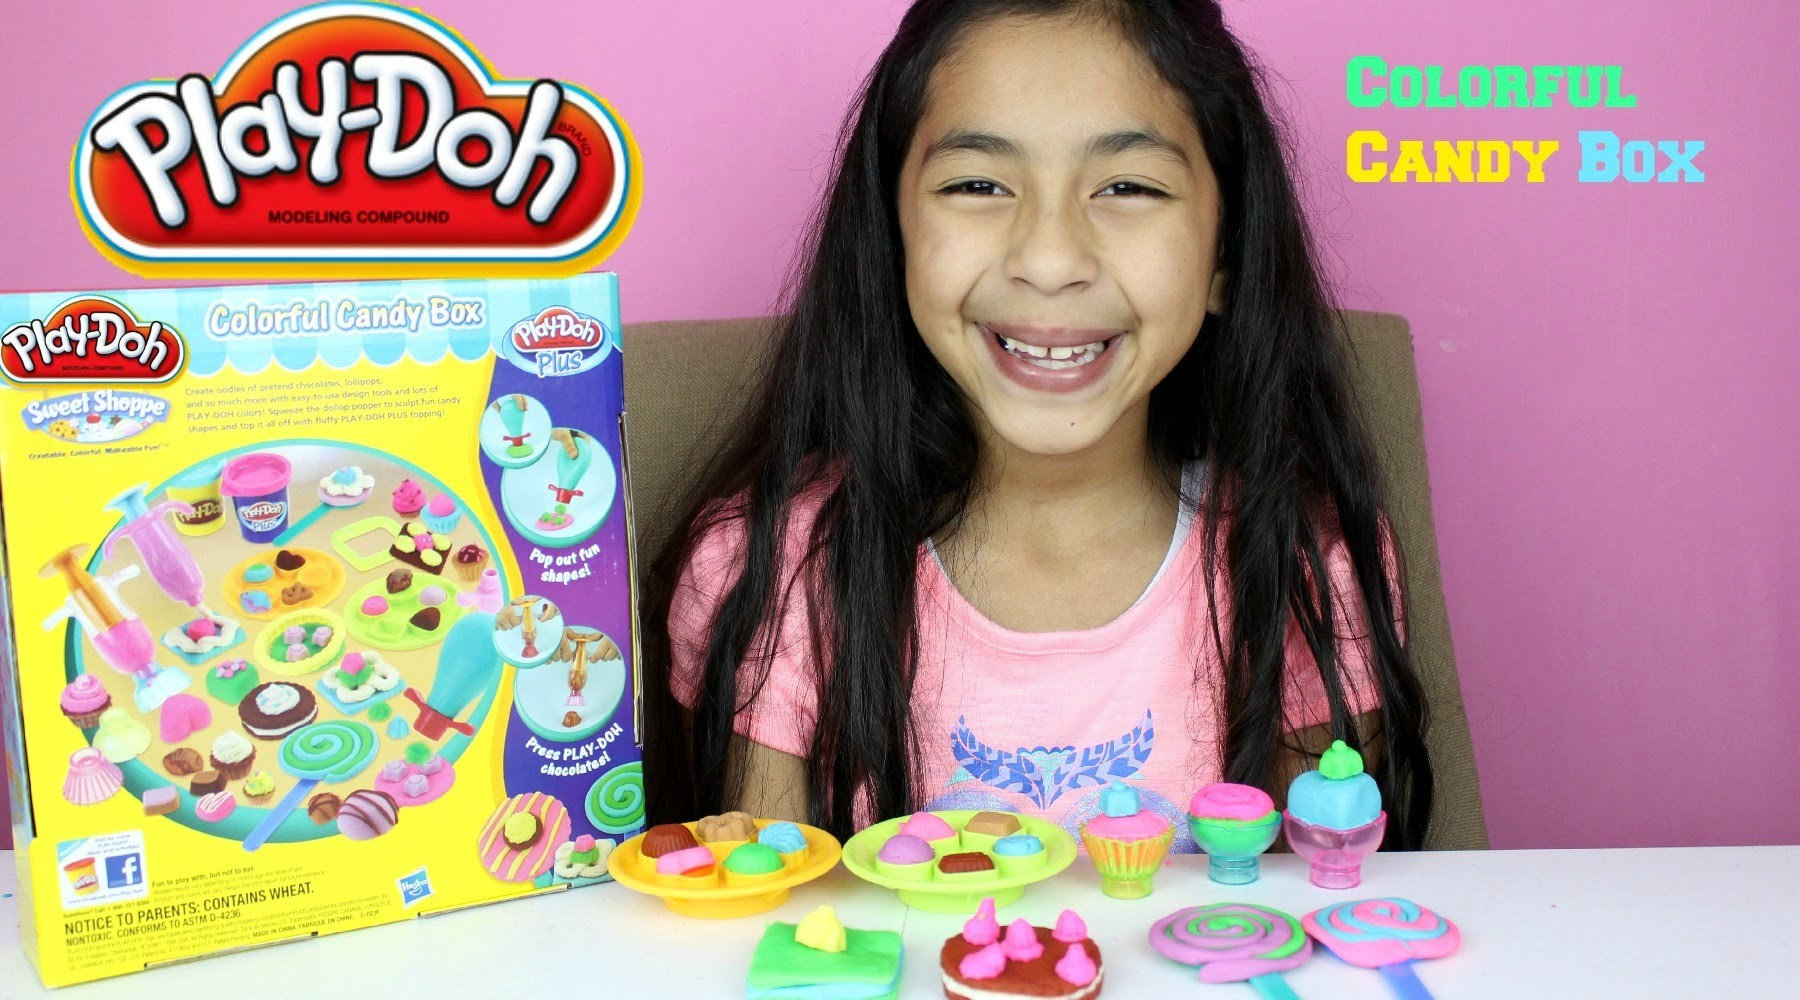 Tuesday Play Doh Colorful Candy Box Play Doh Candy Cookies Cupcakes Lollipops|B2cuteCupcakes